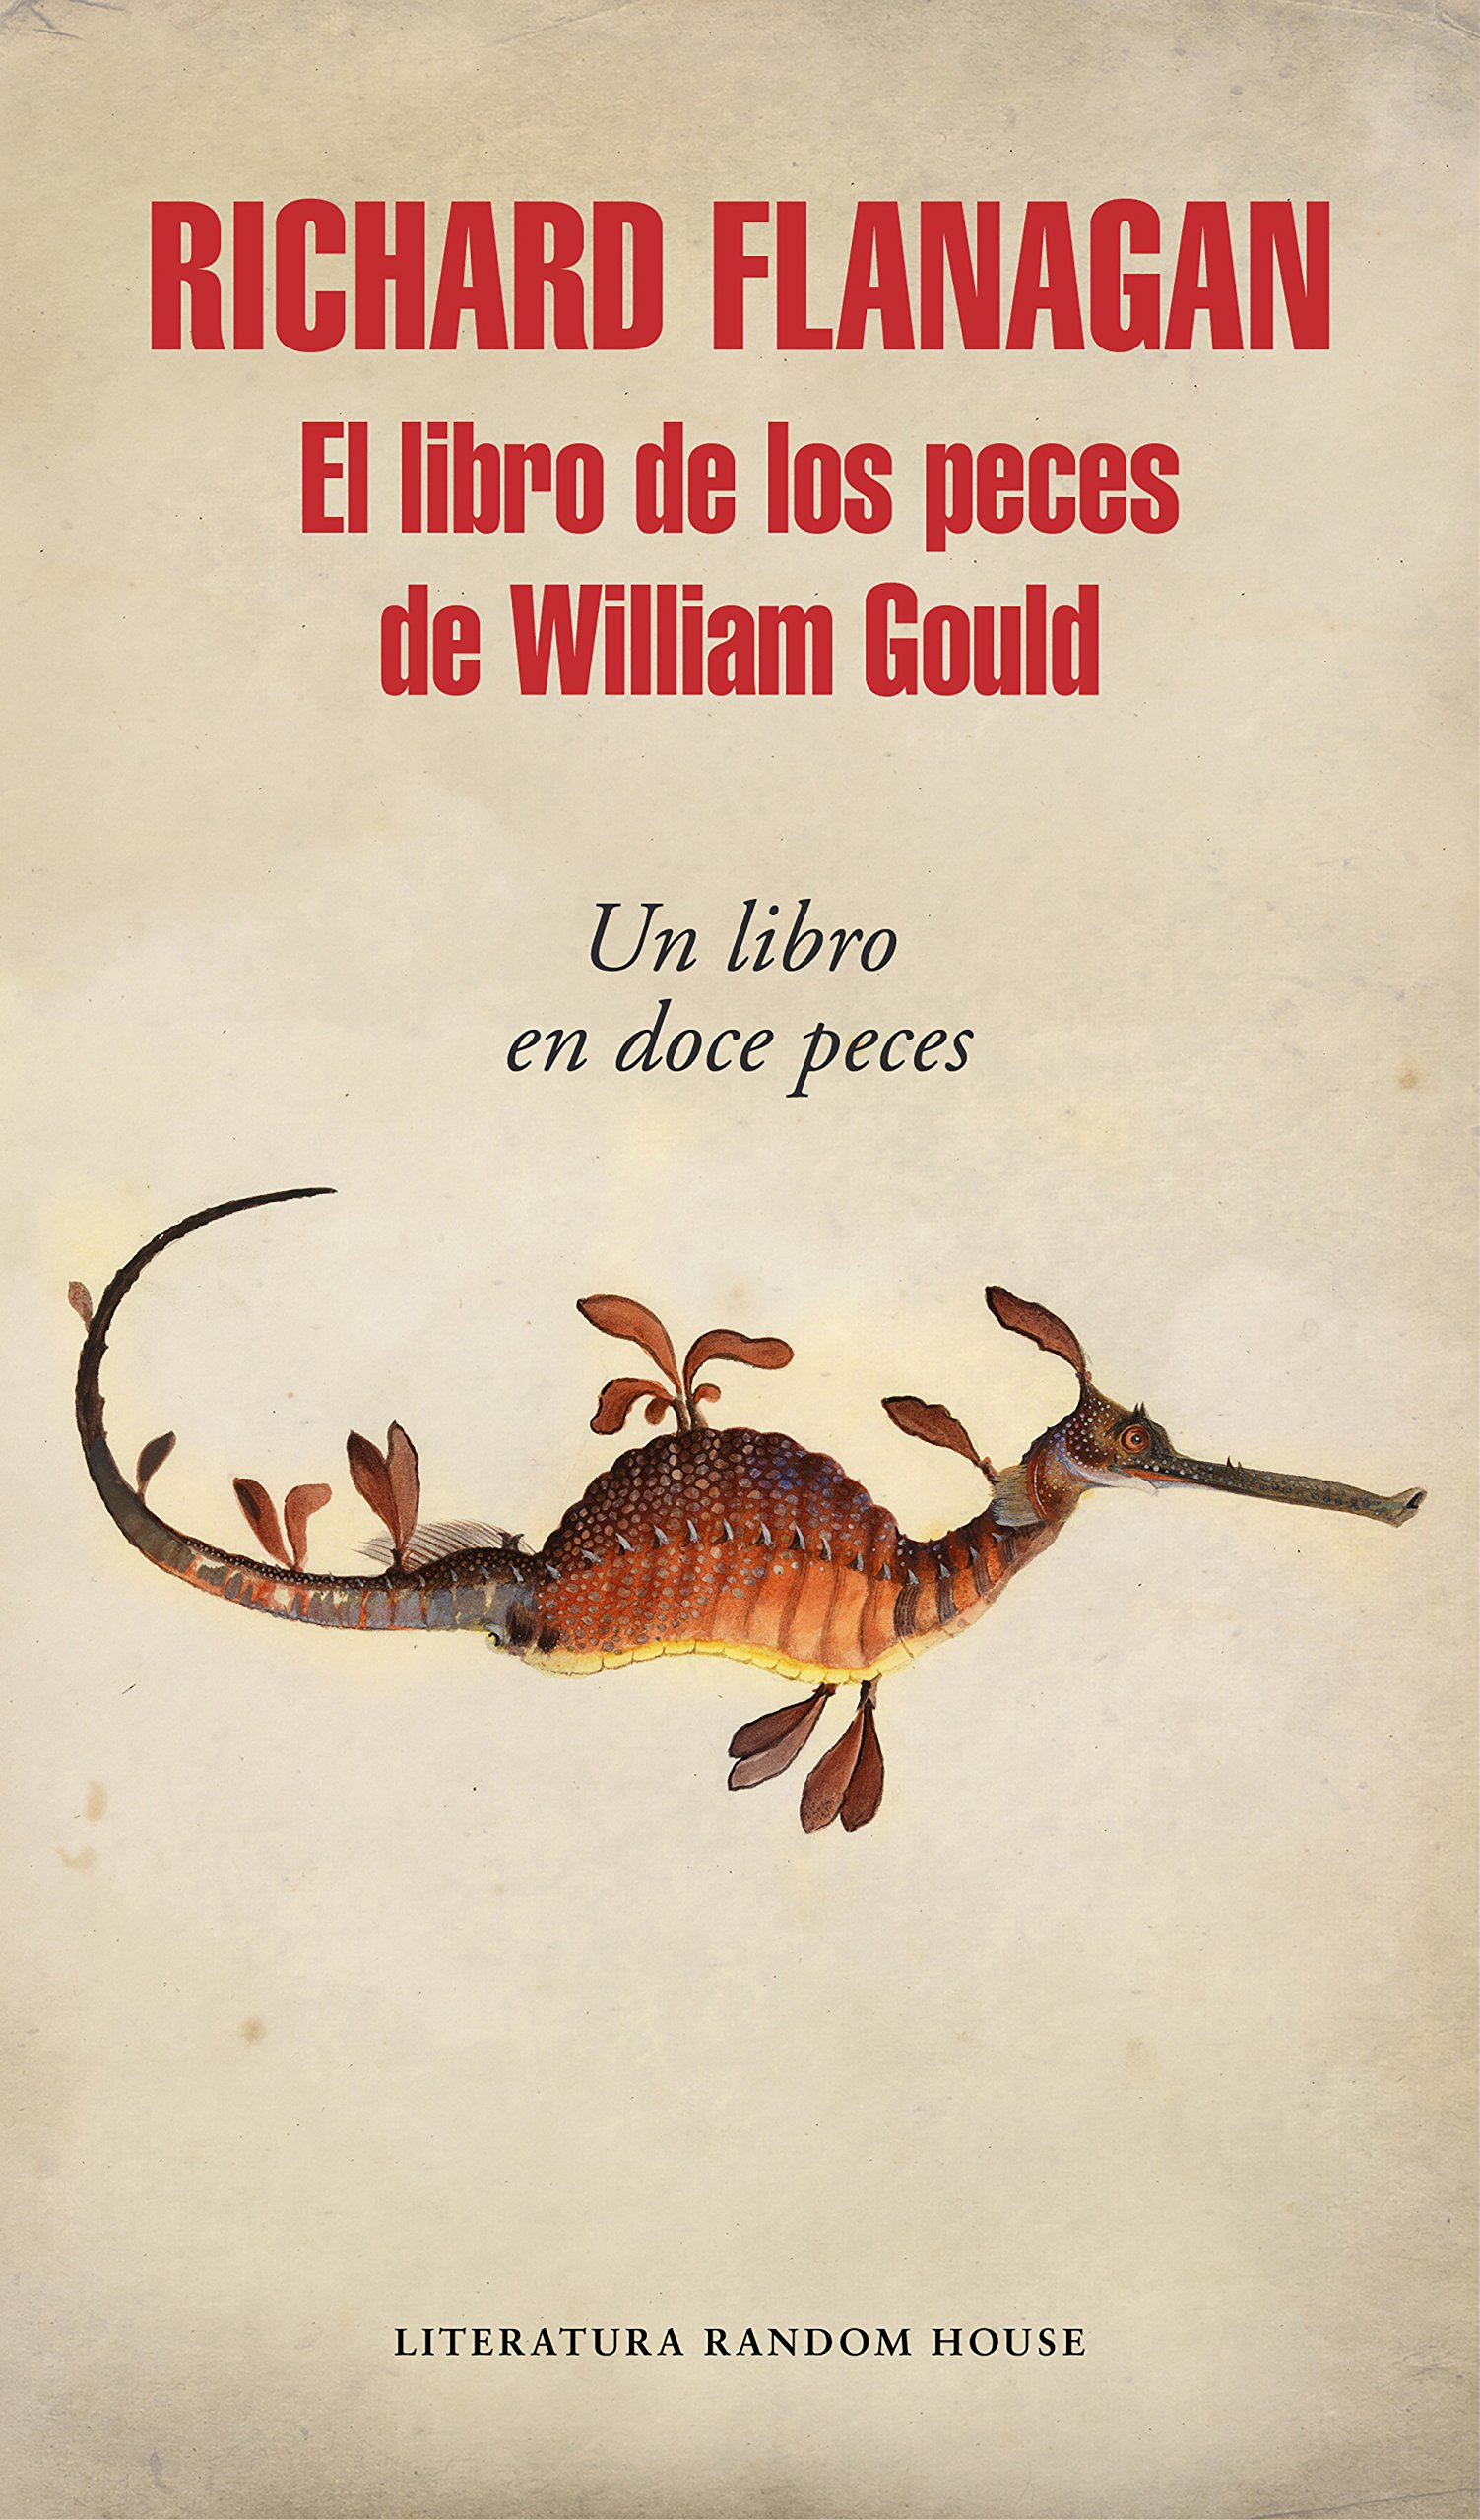 El libro de los peces de William Gould / Goulds Book of Fish (Spanish Edition): Richard Flanagan: 9788439732556: Amazon.com: Books